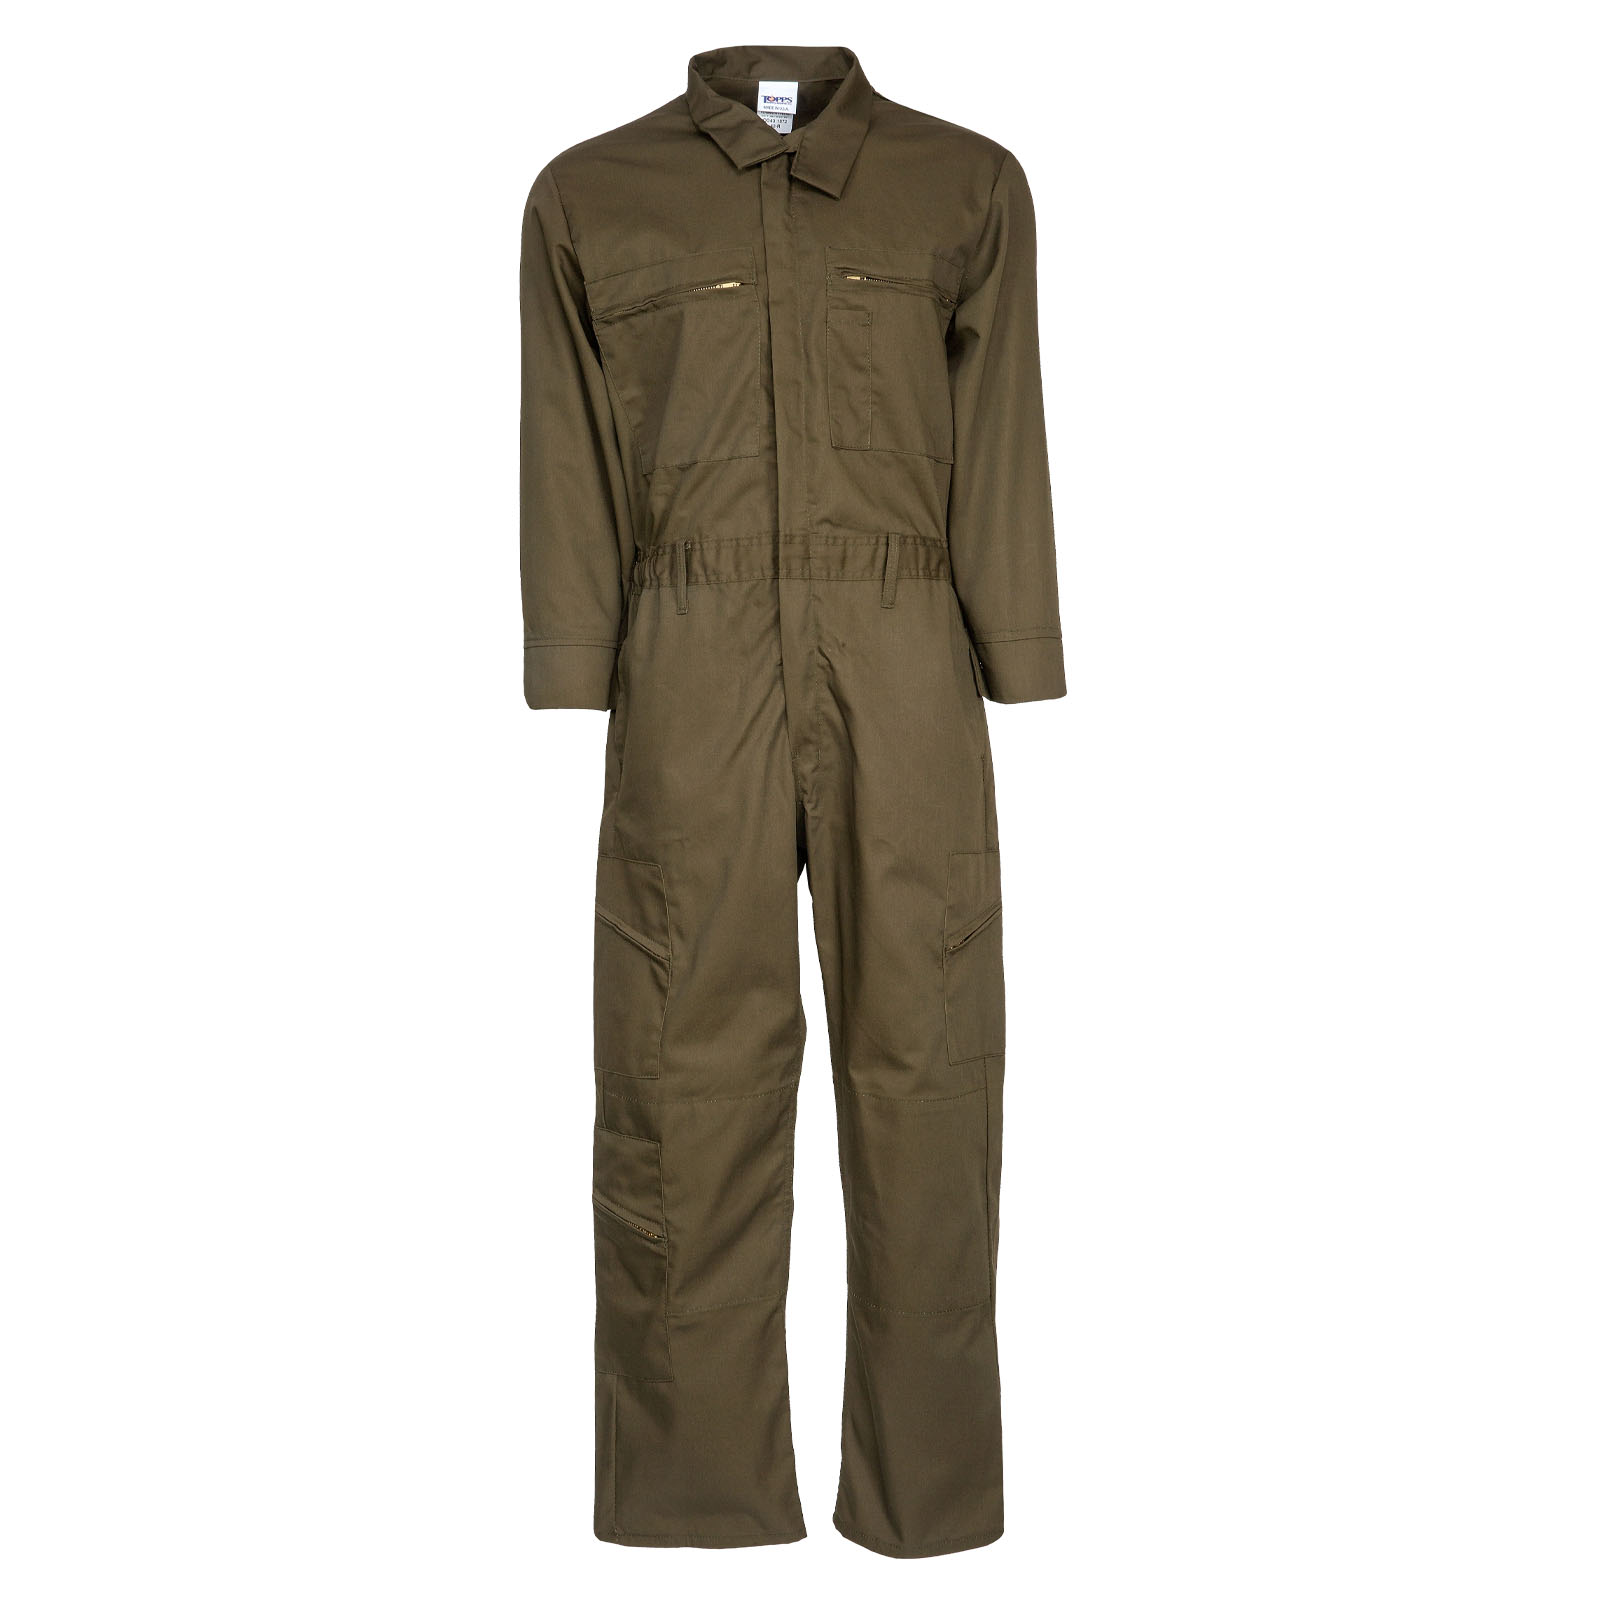 65/35 CDC Tactical Wear Coverall-TOPPS